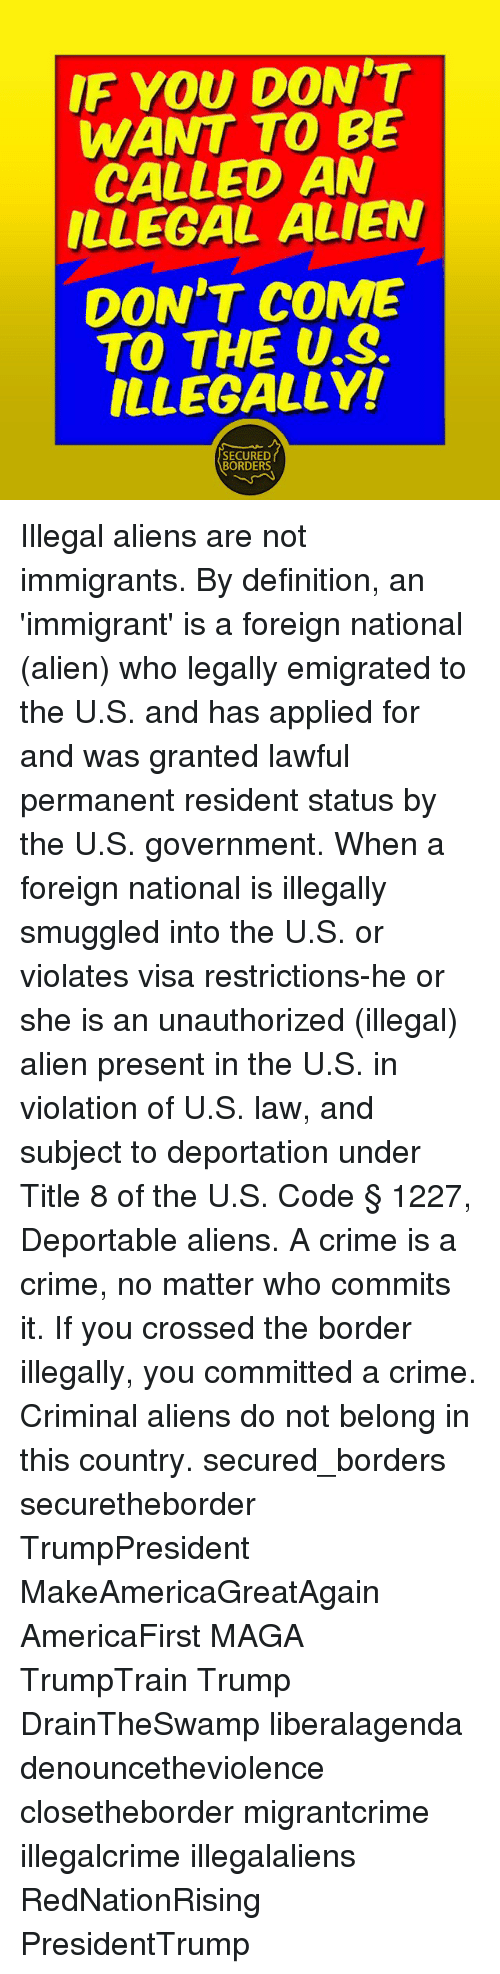 if you don't want to be called an illegal alien don't come to the us